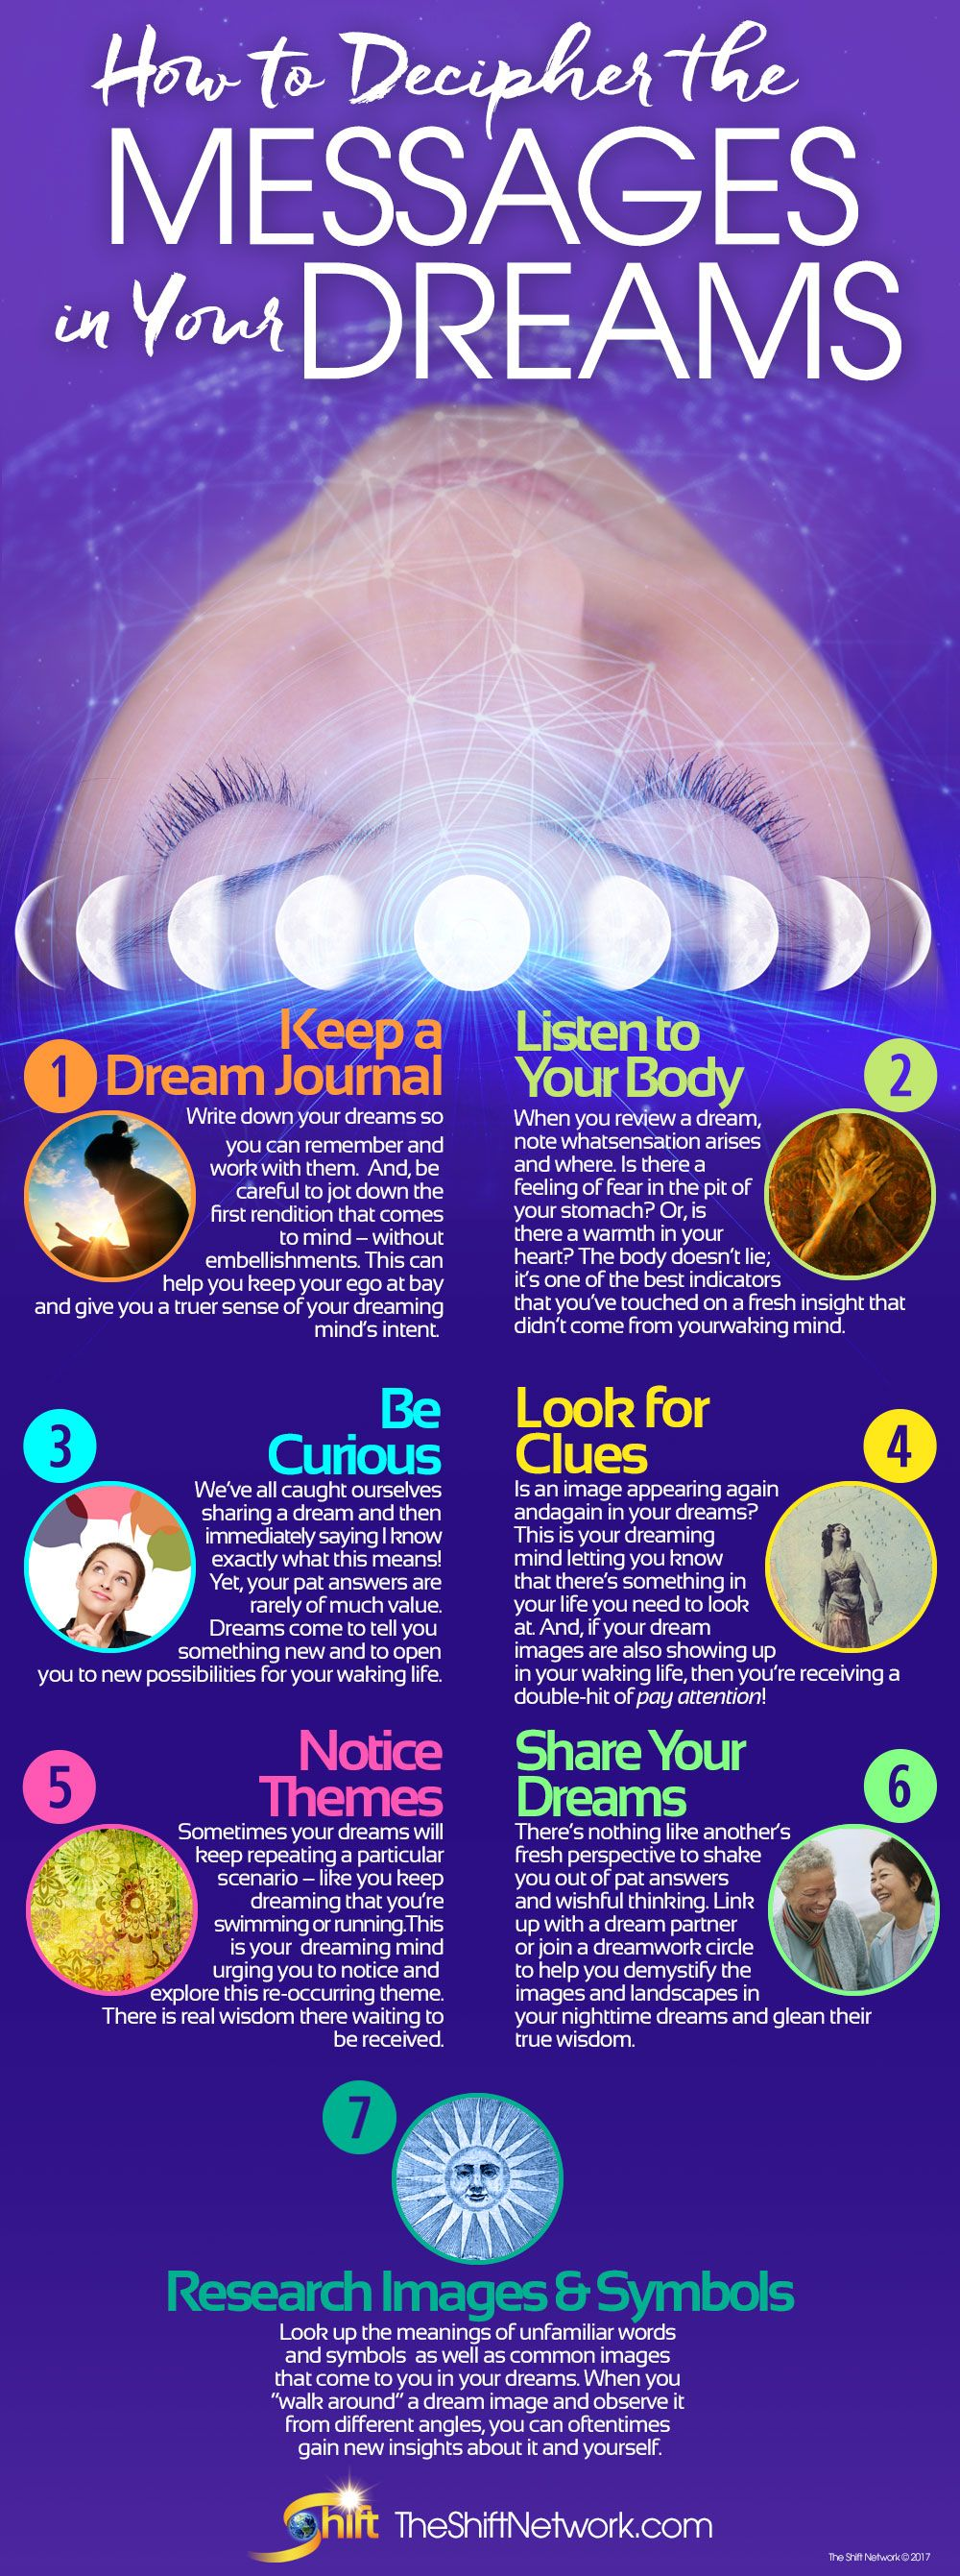 Best 25 dream interpretation and meaning ideas on pinterest best 25 dream interpretation and meaning ideas on pinterest dream meanings the interpretation of dreams and meaning of dreams biocorpaavc